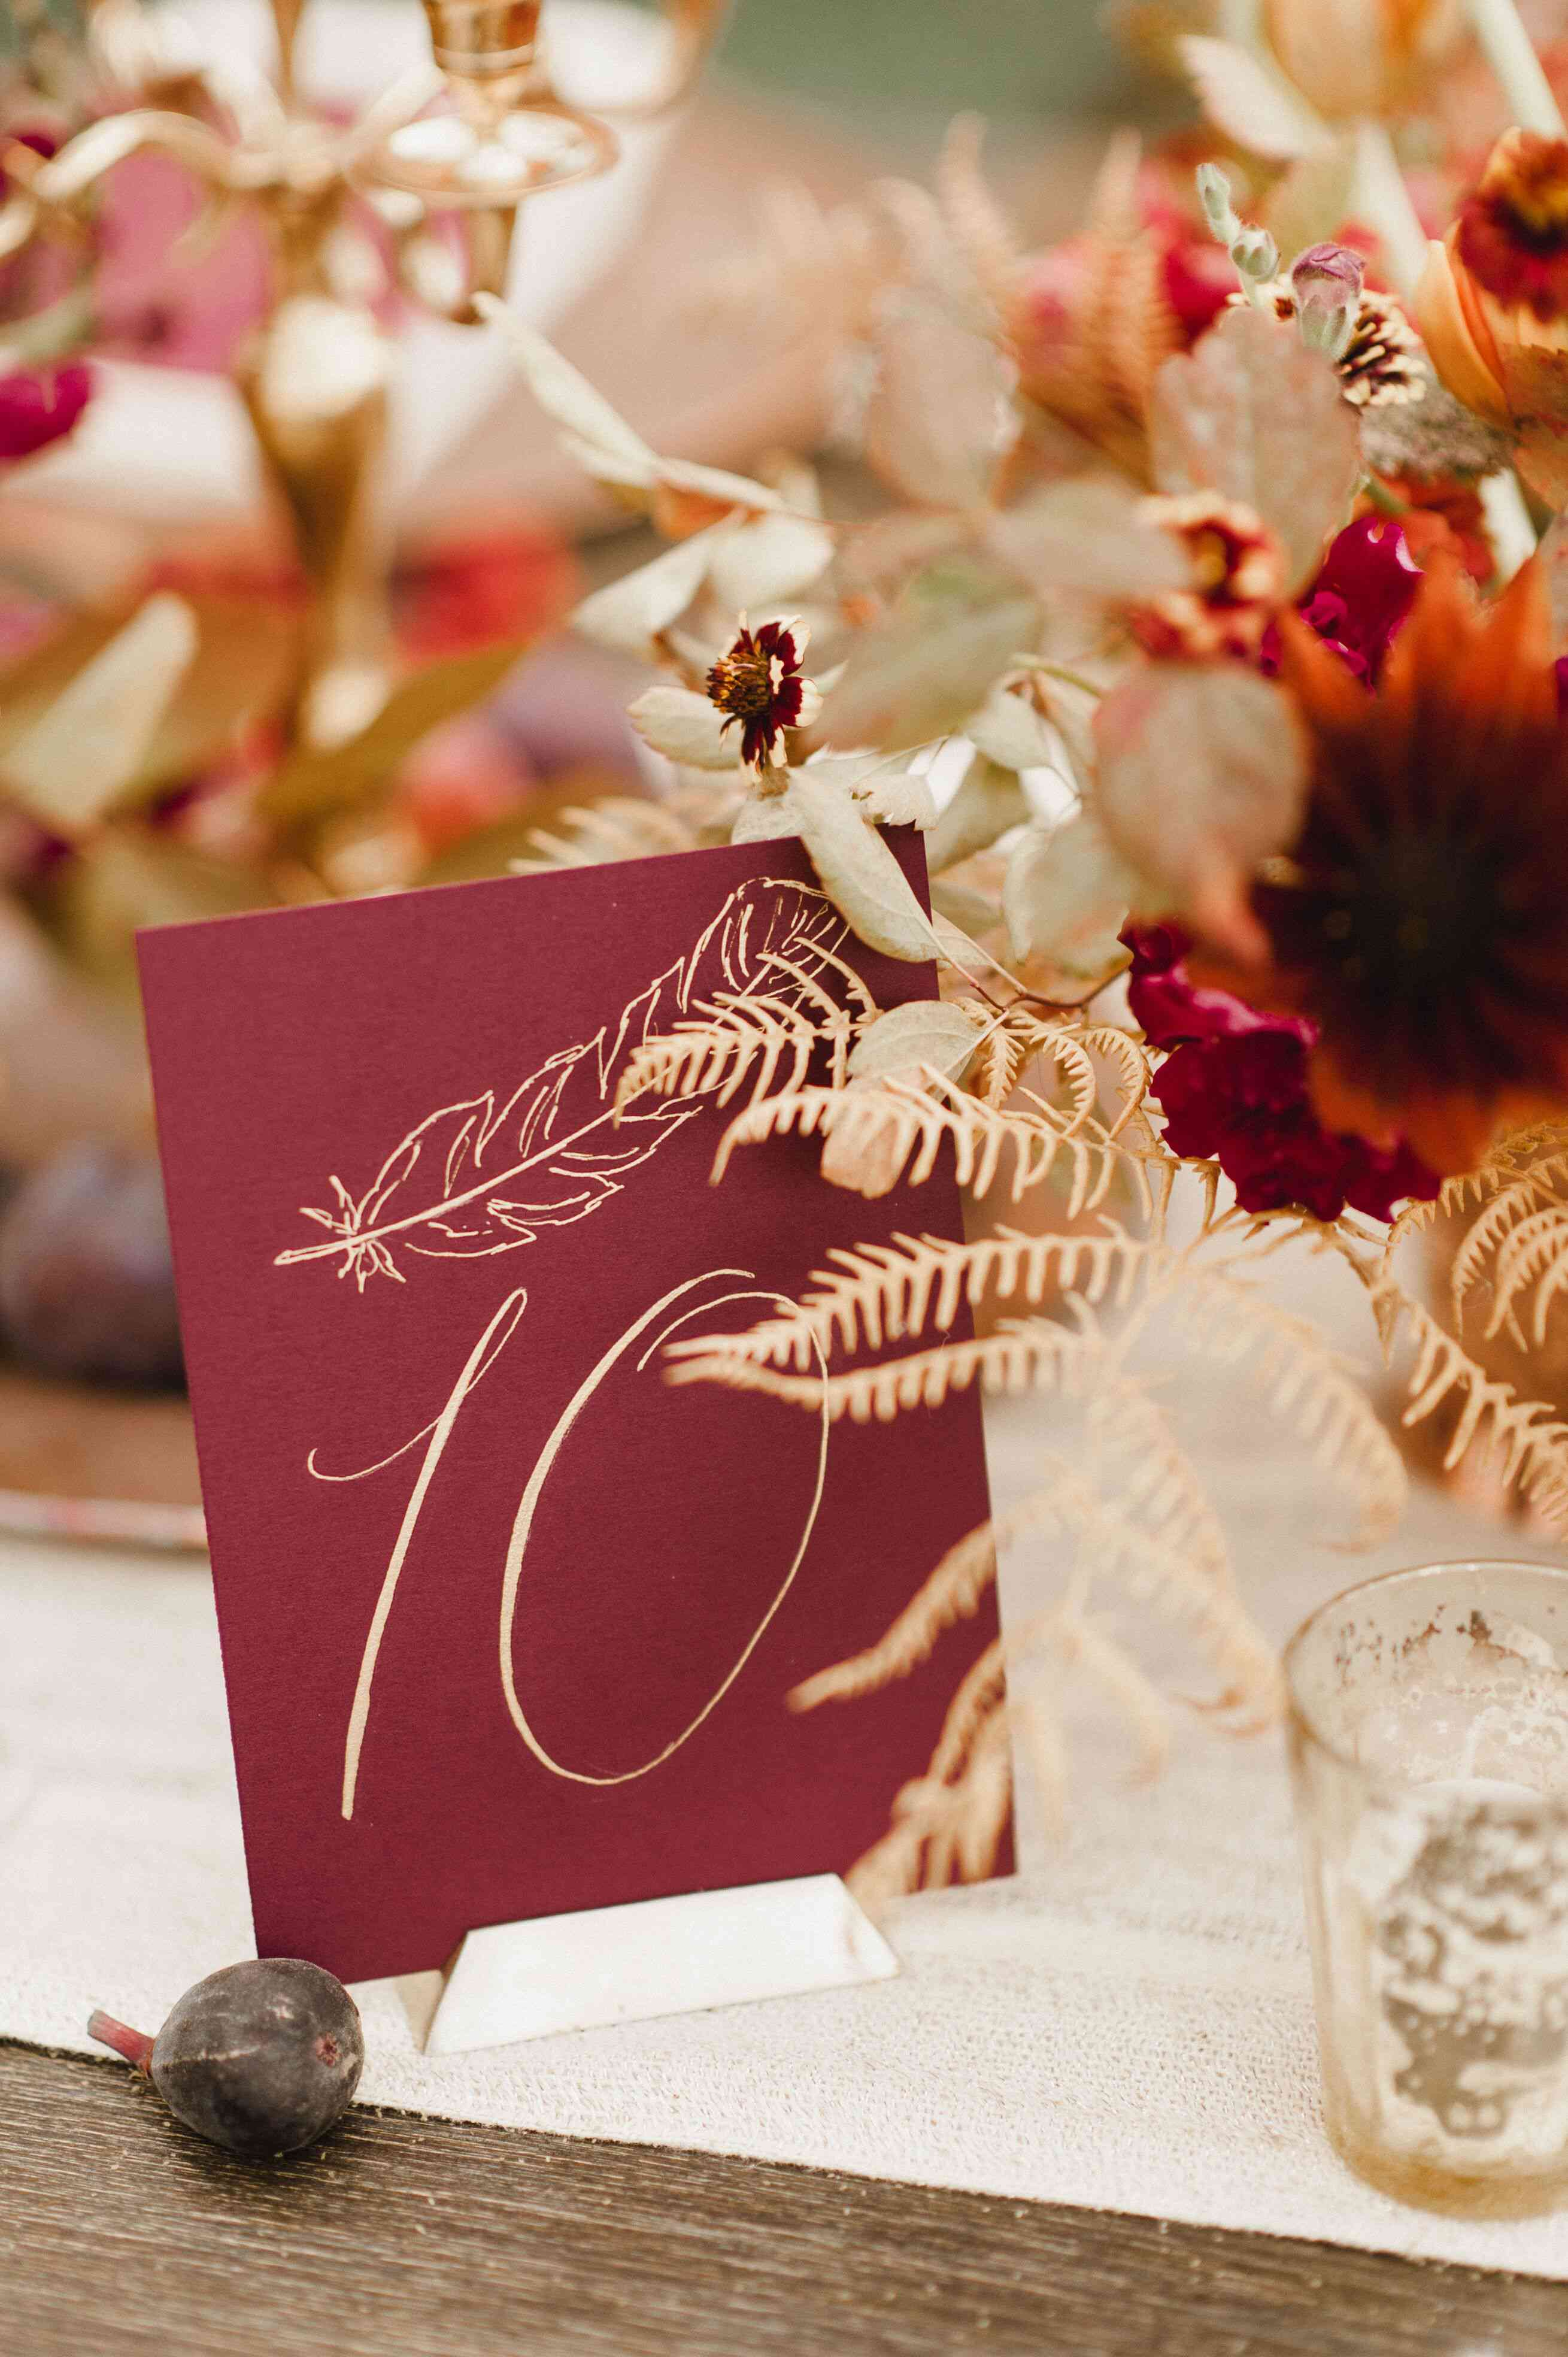 Calligraphy wedding table number